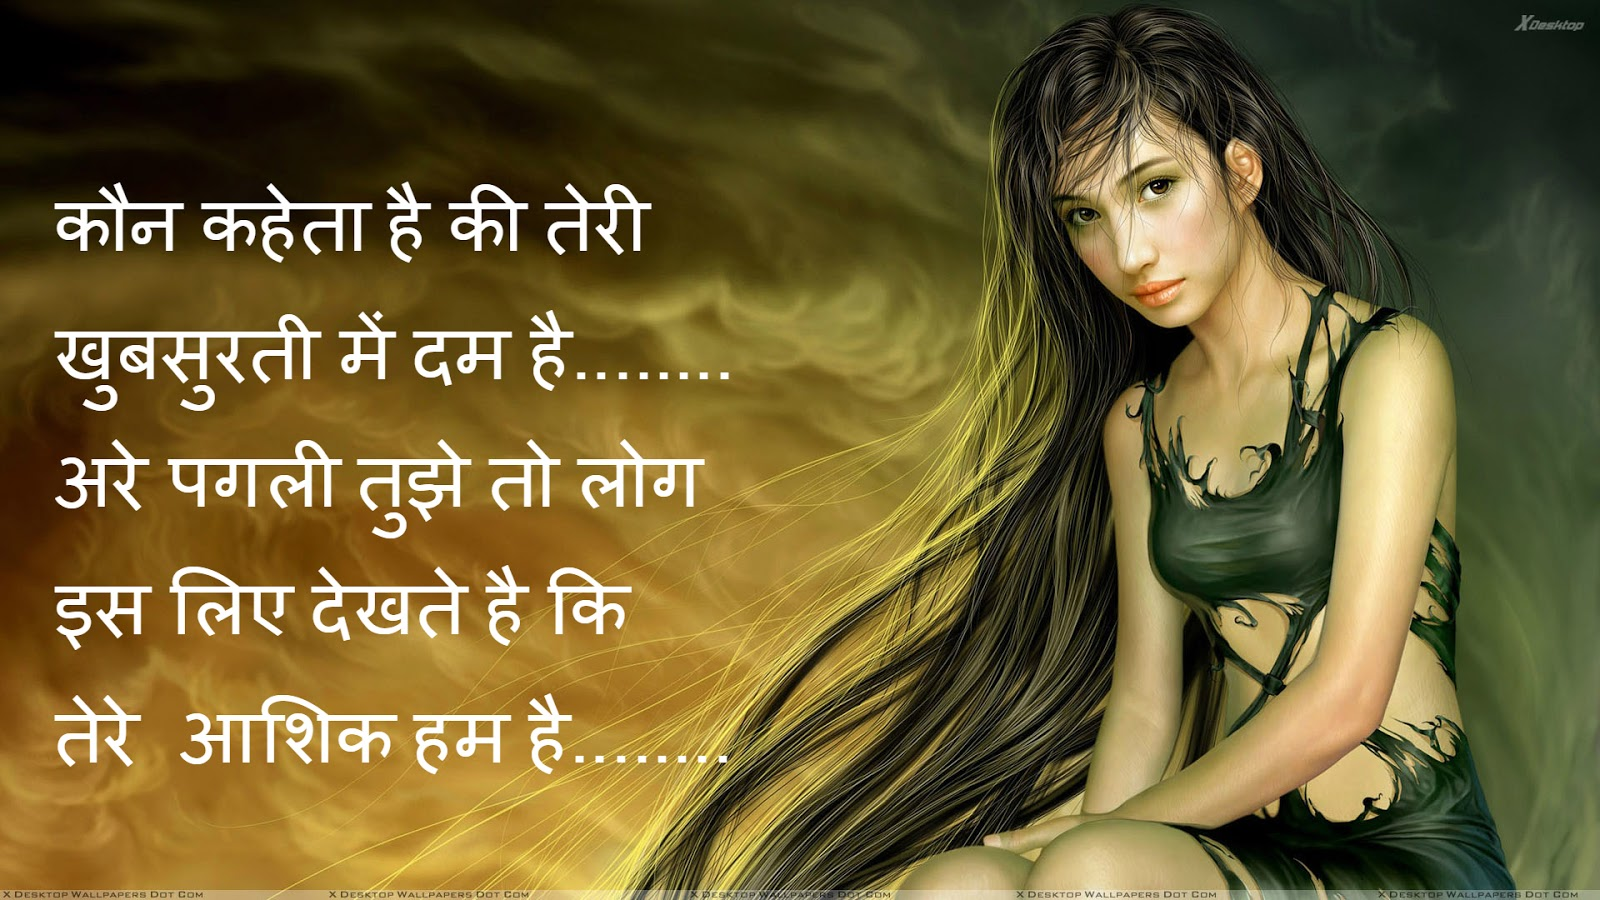 Best Love Quotes In Hindi Wallpapers : Wallpaper Of Love With Shayari Hindi \x3cb\x3eshayari\x3c/b\x3e,\x3cb ...